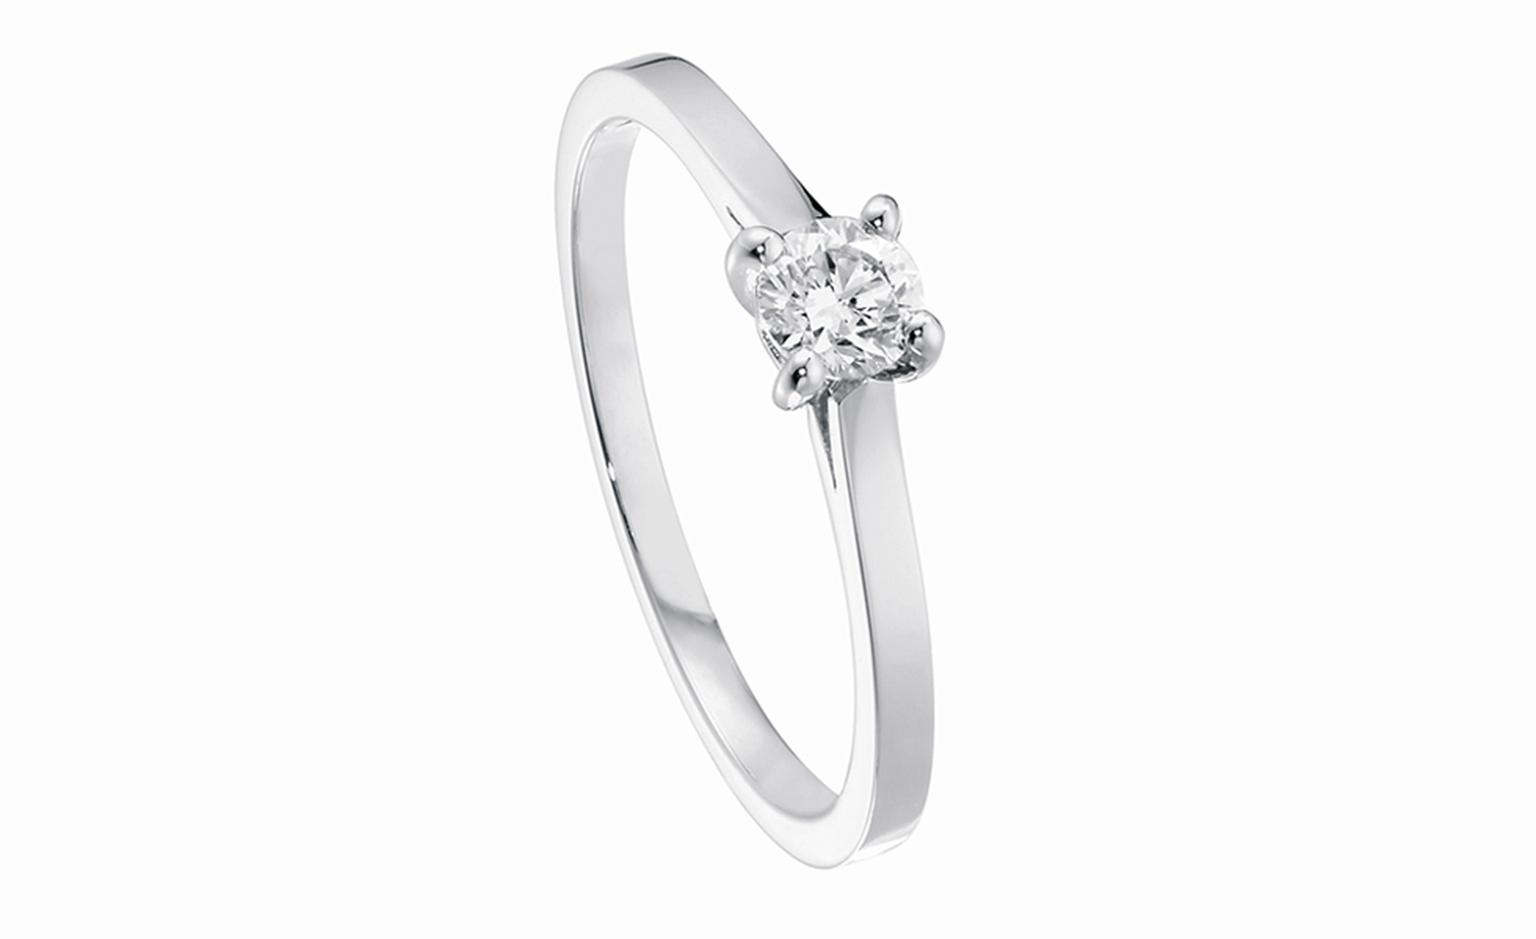 Piaget solitaire engagement ring from £3,060